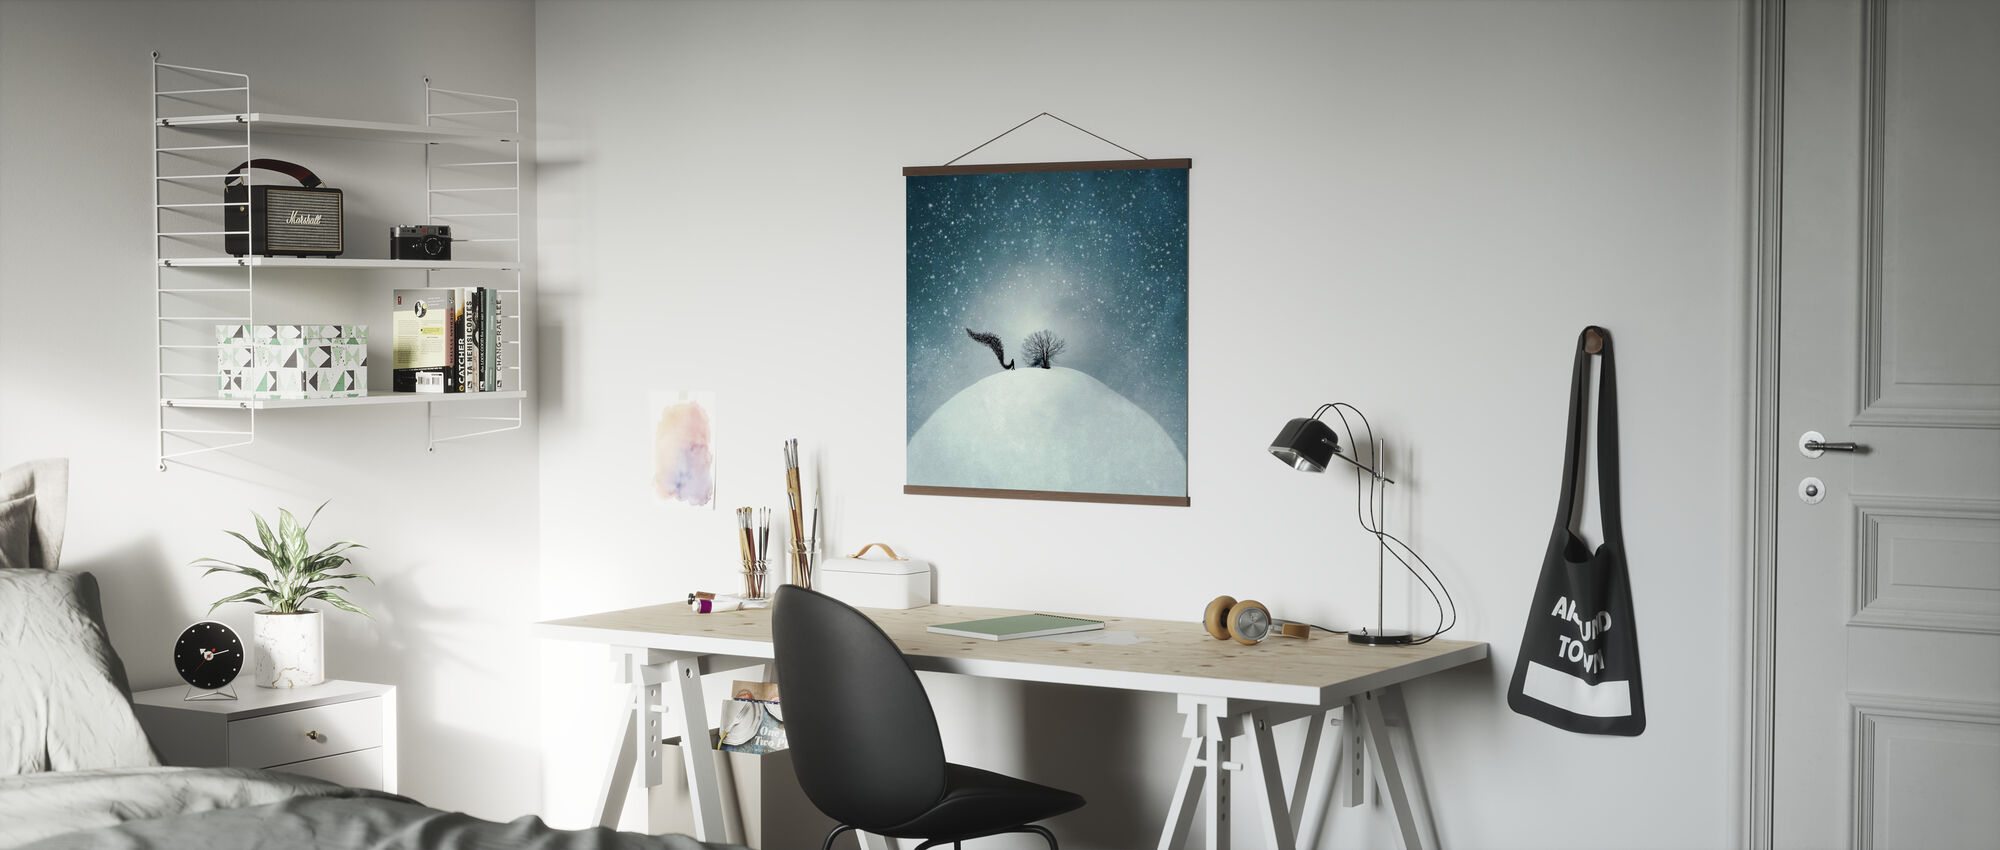 Forlorn - Poster - Office